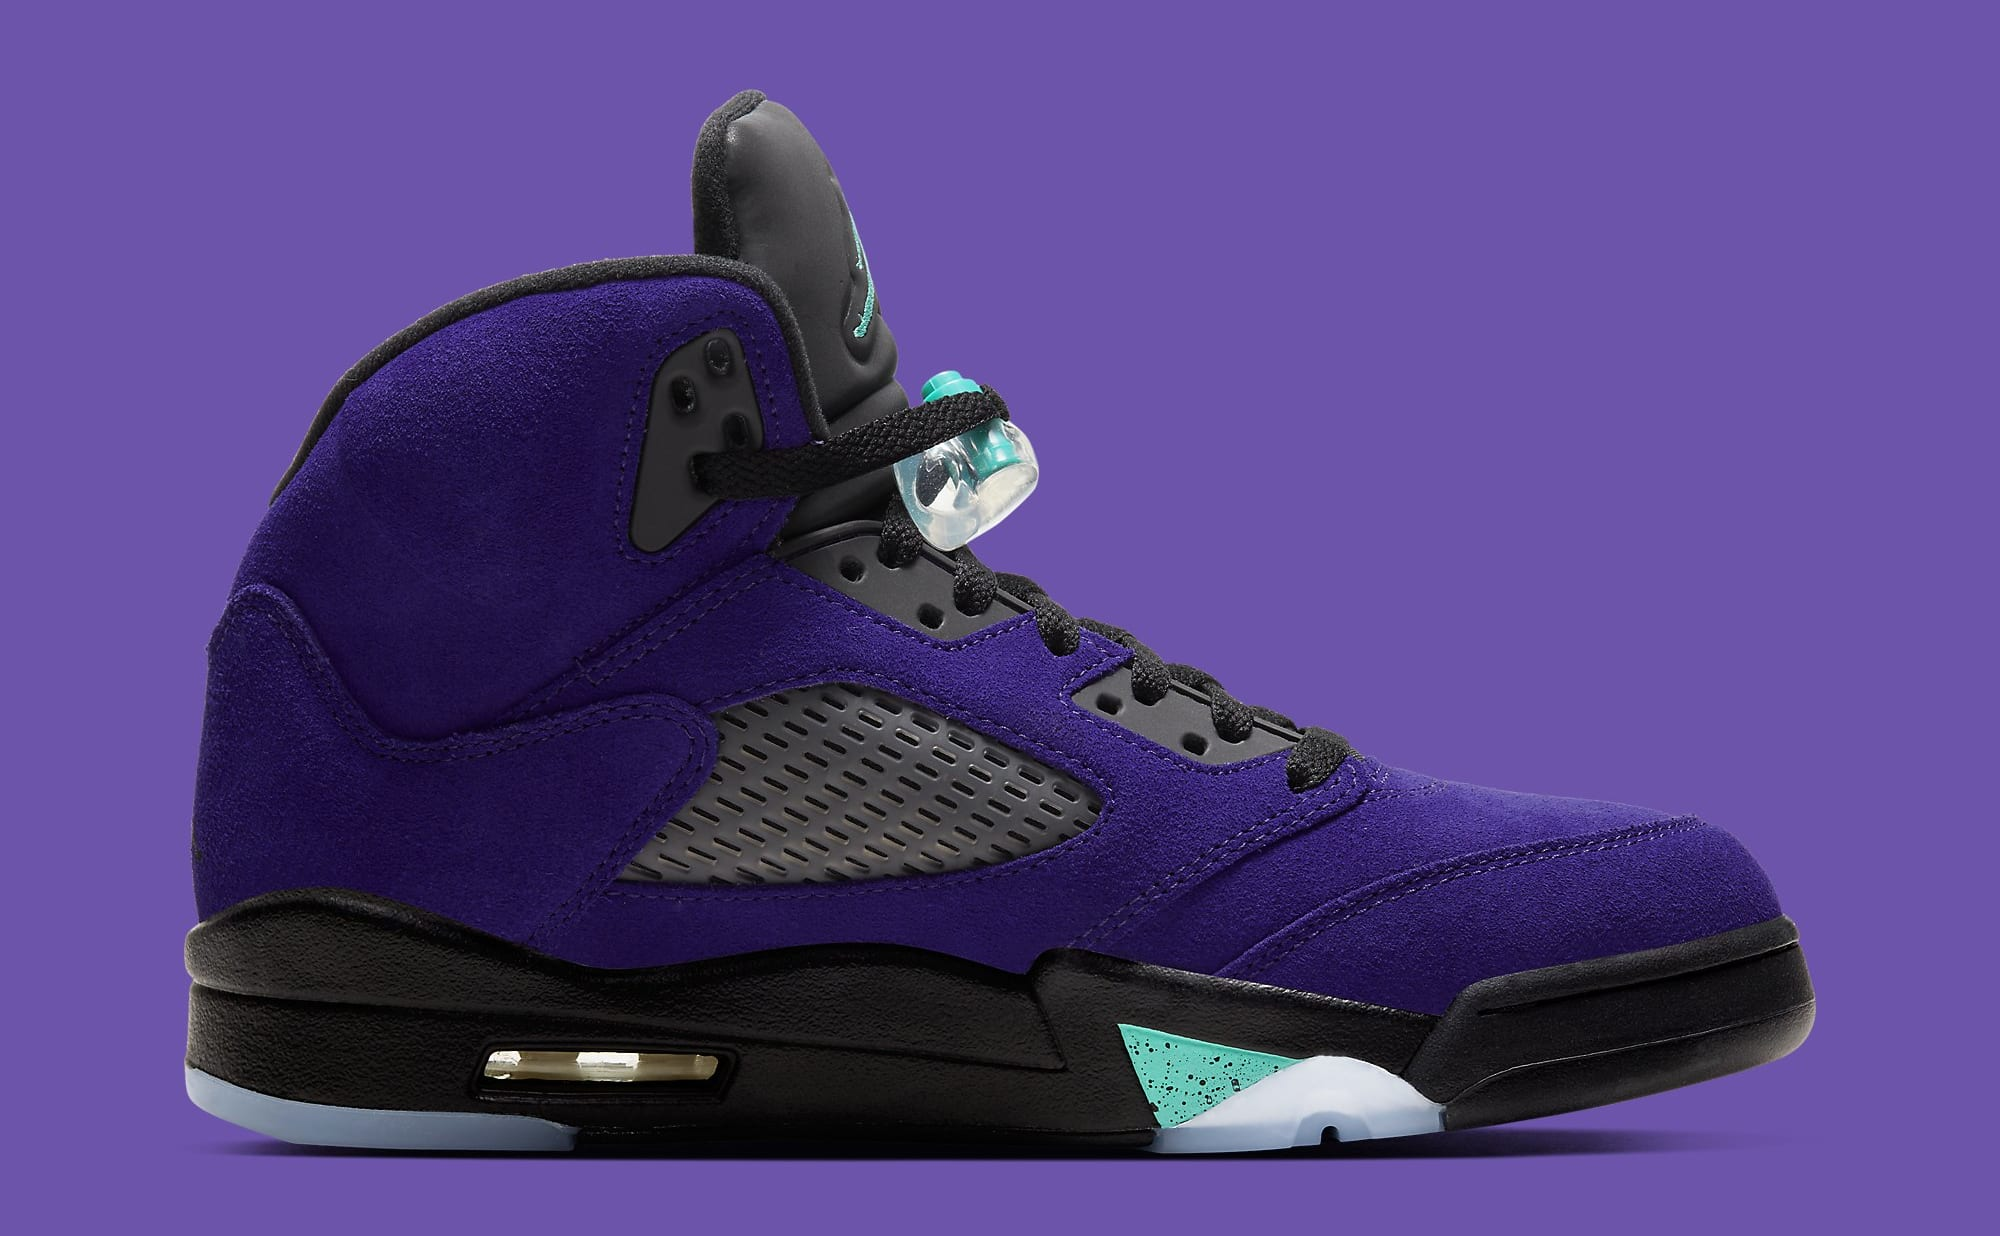 Air Jordan 5 Retro 'Alternate Grape' 136027-500 Medial